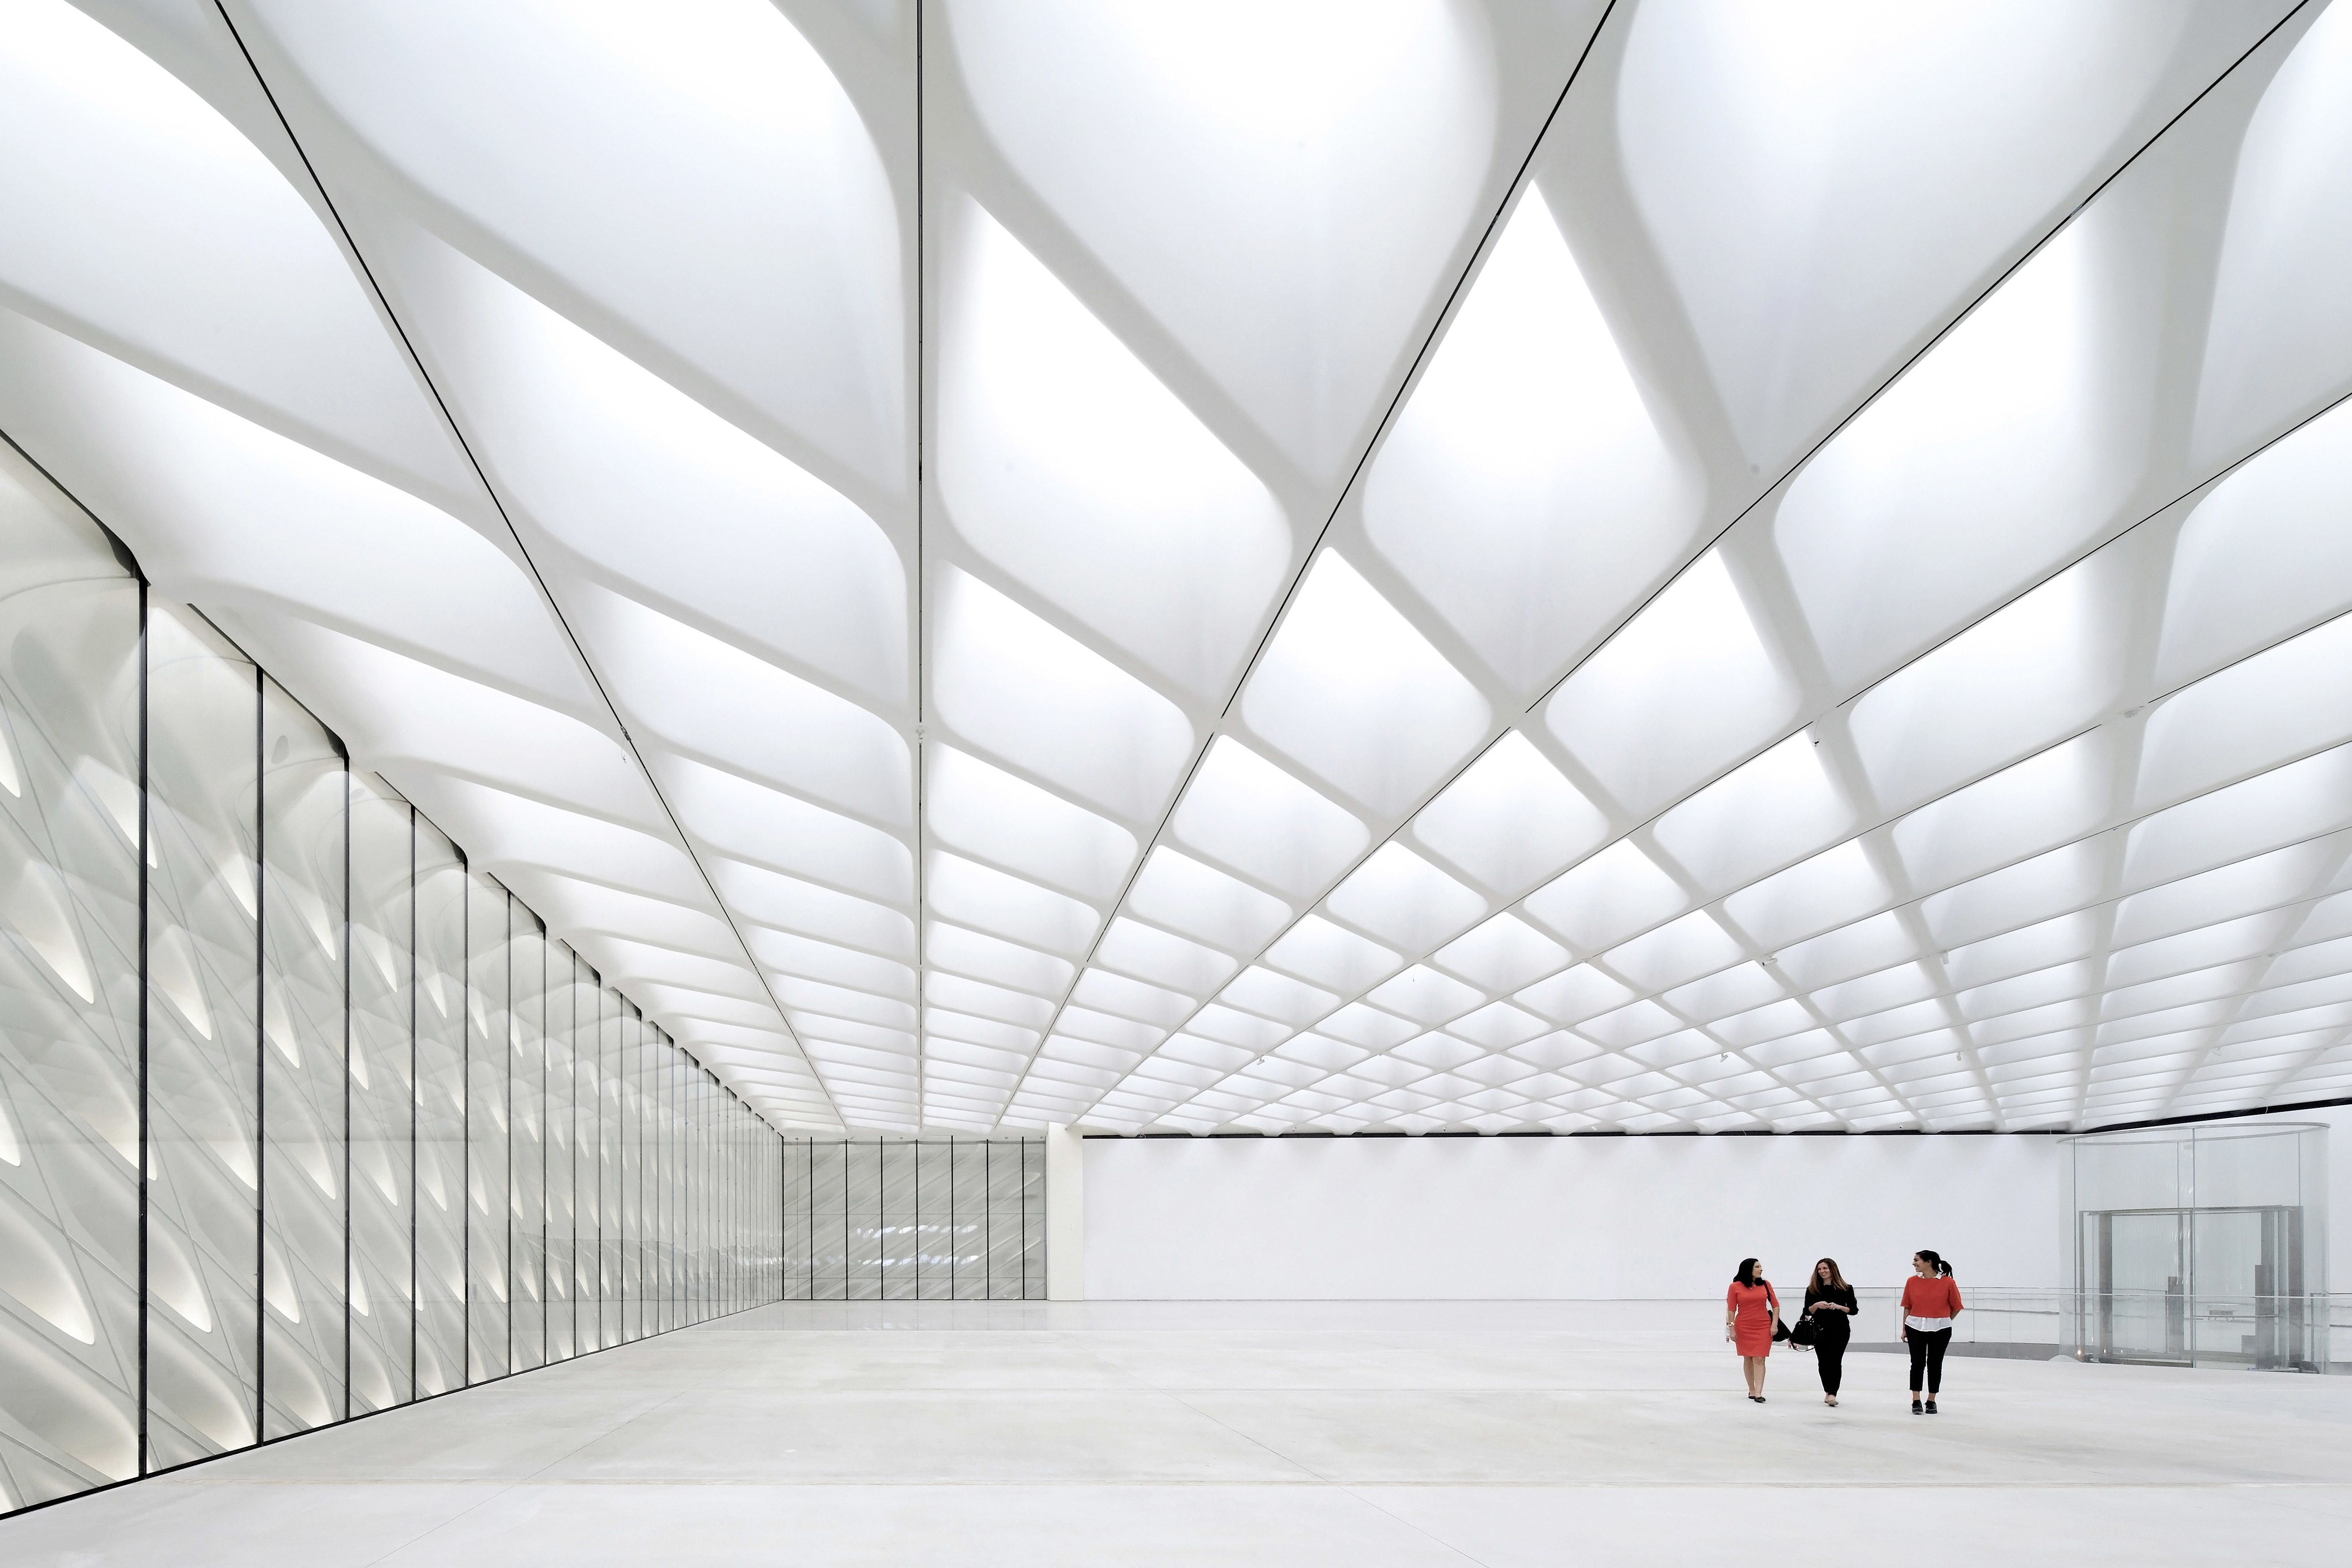 A Sneak Peek At The Broad Museum S Incredible Latticed Concrete The Broad Museum Museum Interior Futuristic Architecture